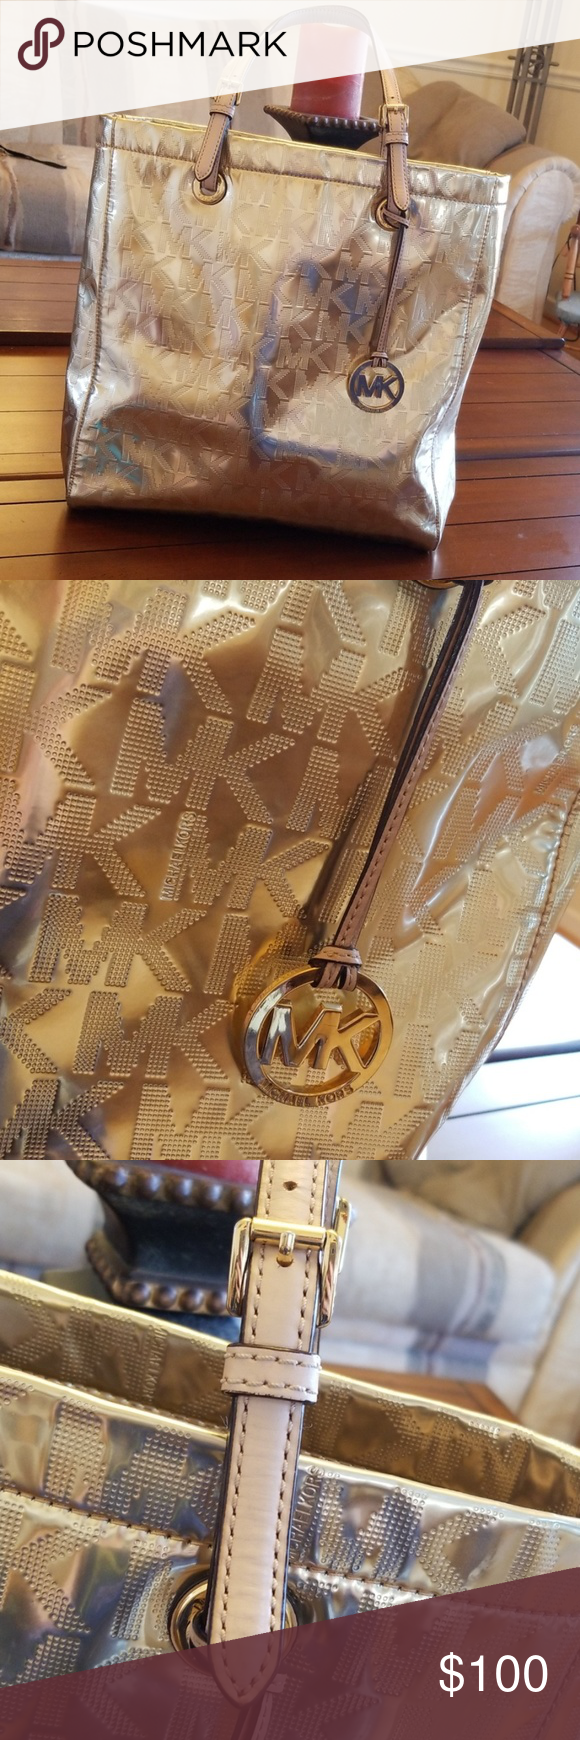 MK GOLD 🌟 TRAVEL TOTE Michael Kors large gold travel tote with MK logo. This bag is in excellent con...